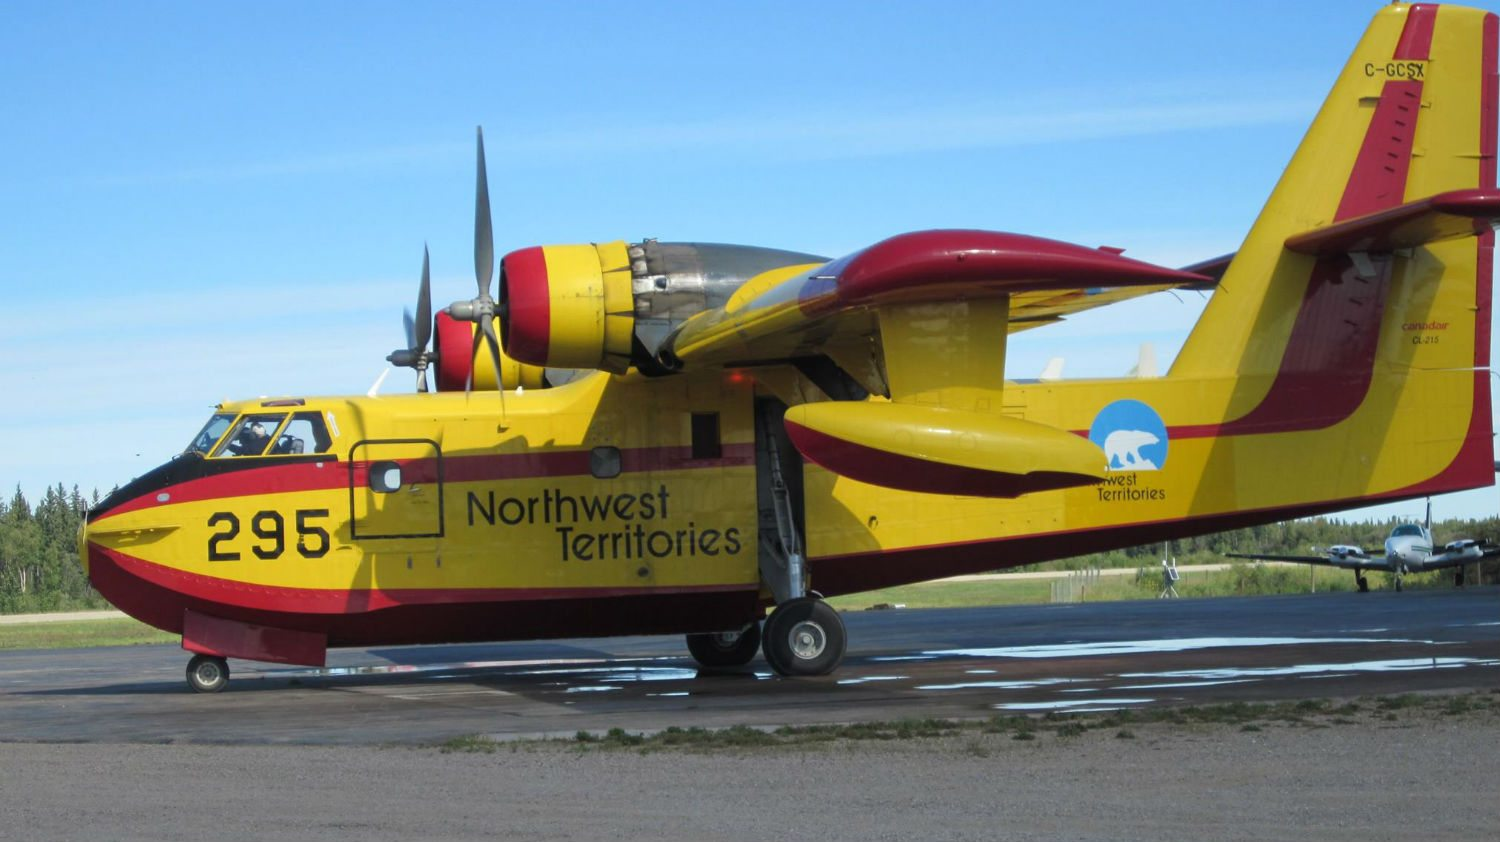 NWT air tanker for fire fighting